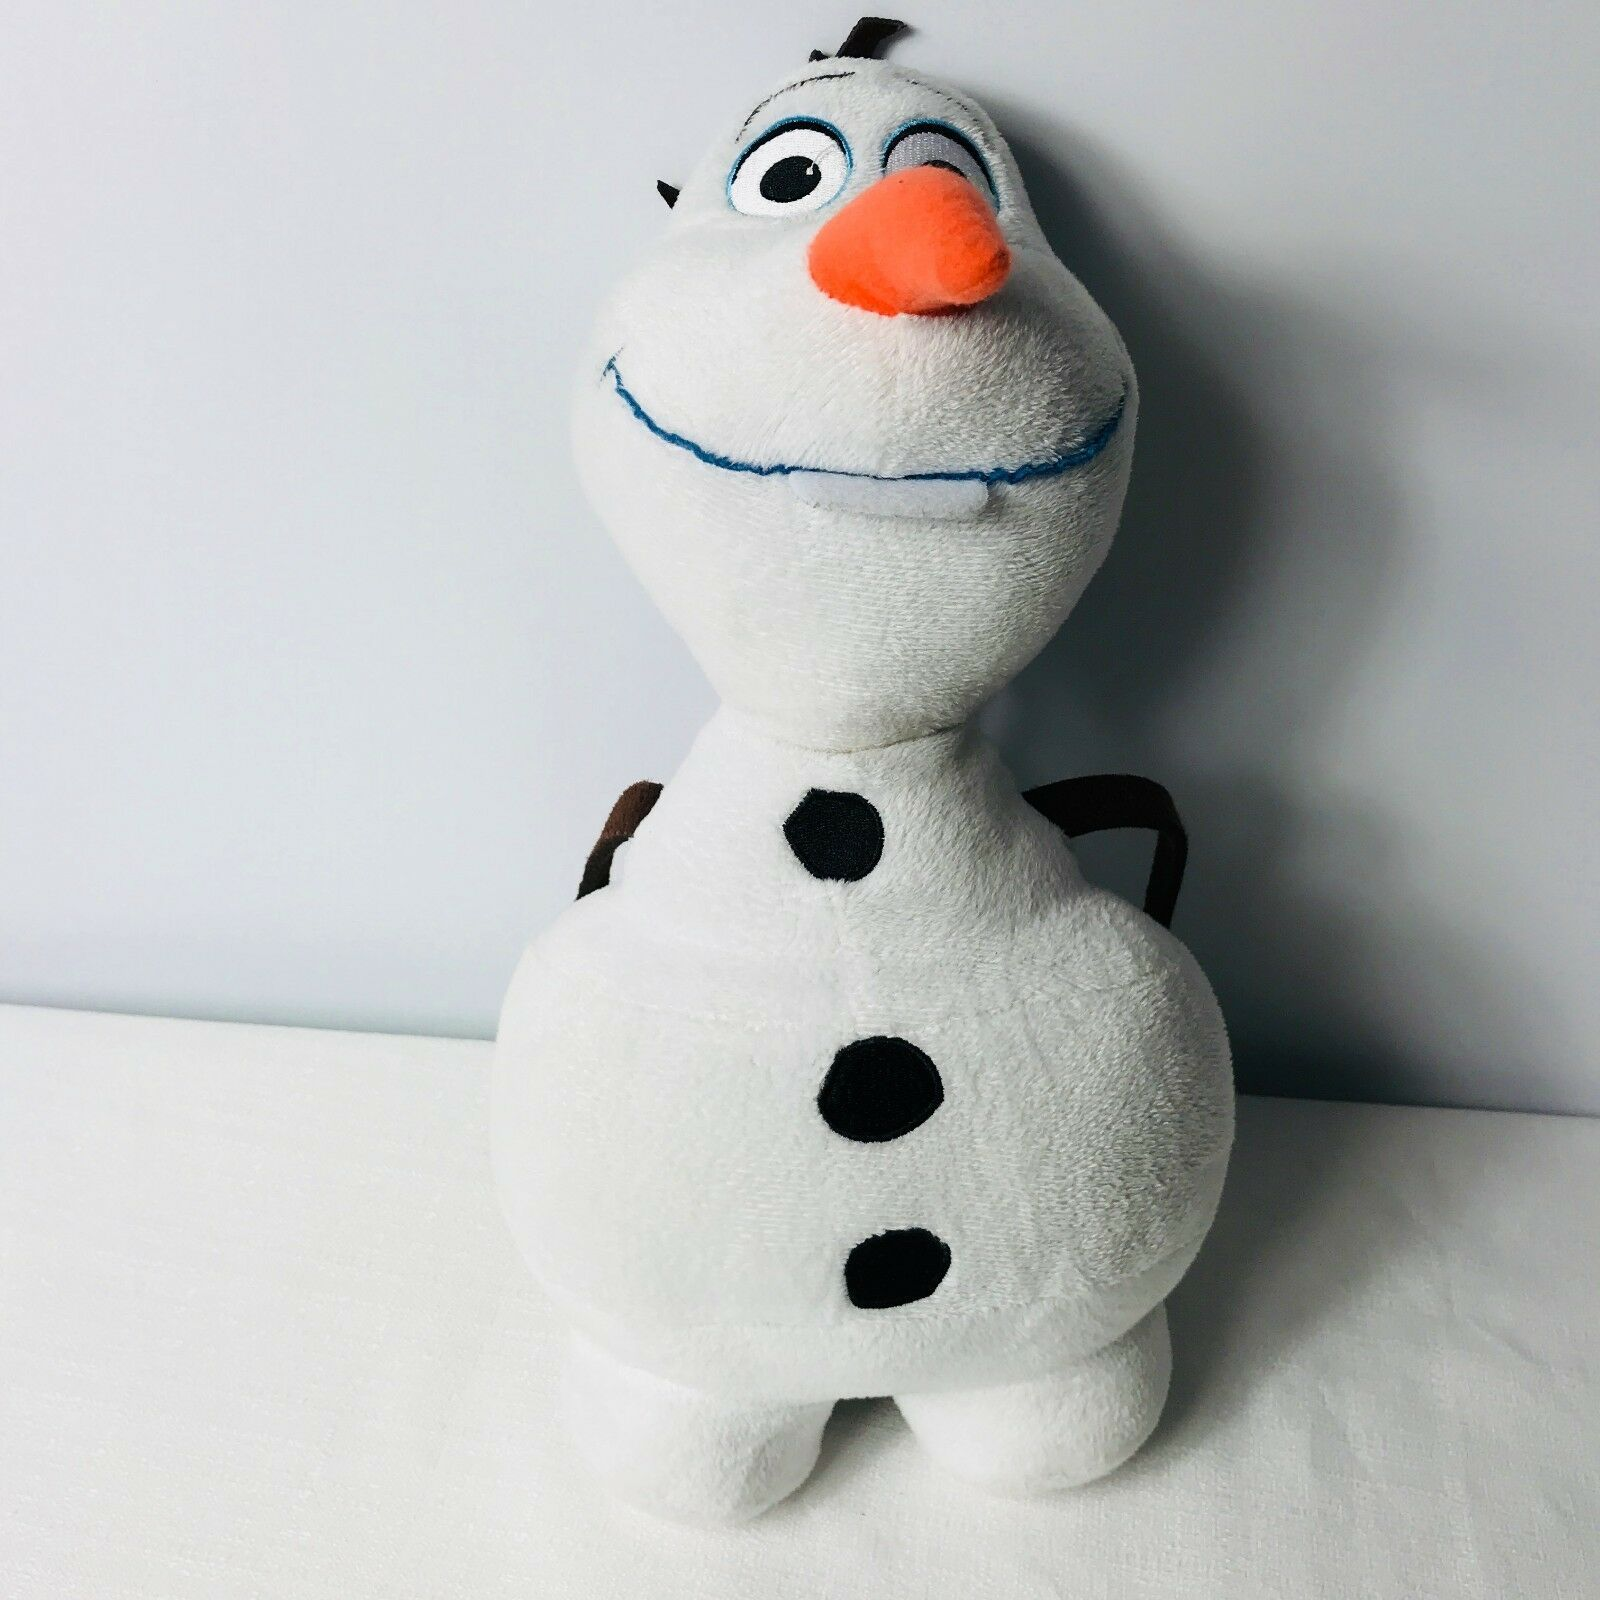 New Disney Frozen Olaf Plush Doll Backpack Snowman Costume Bag Elsa Anna Friend